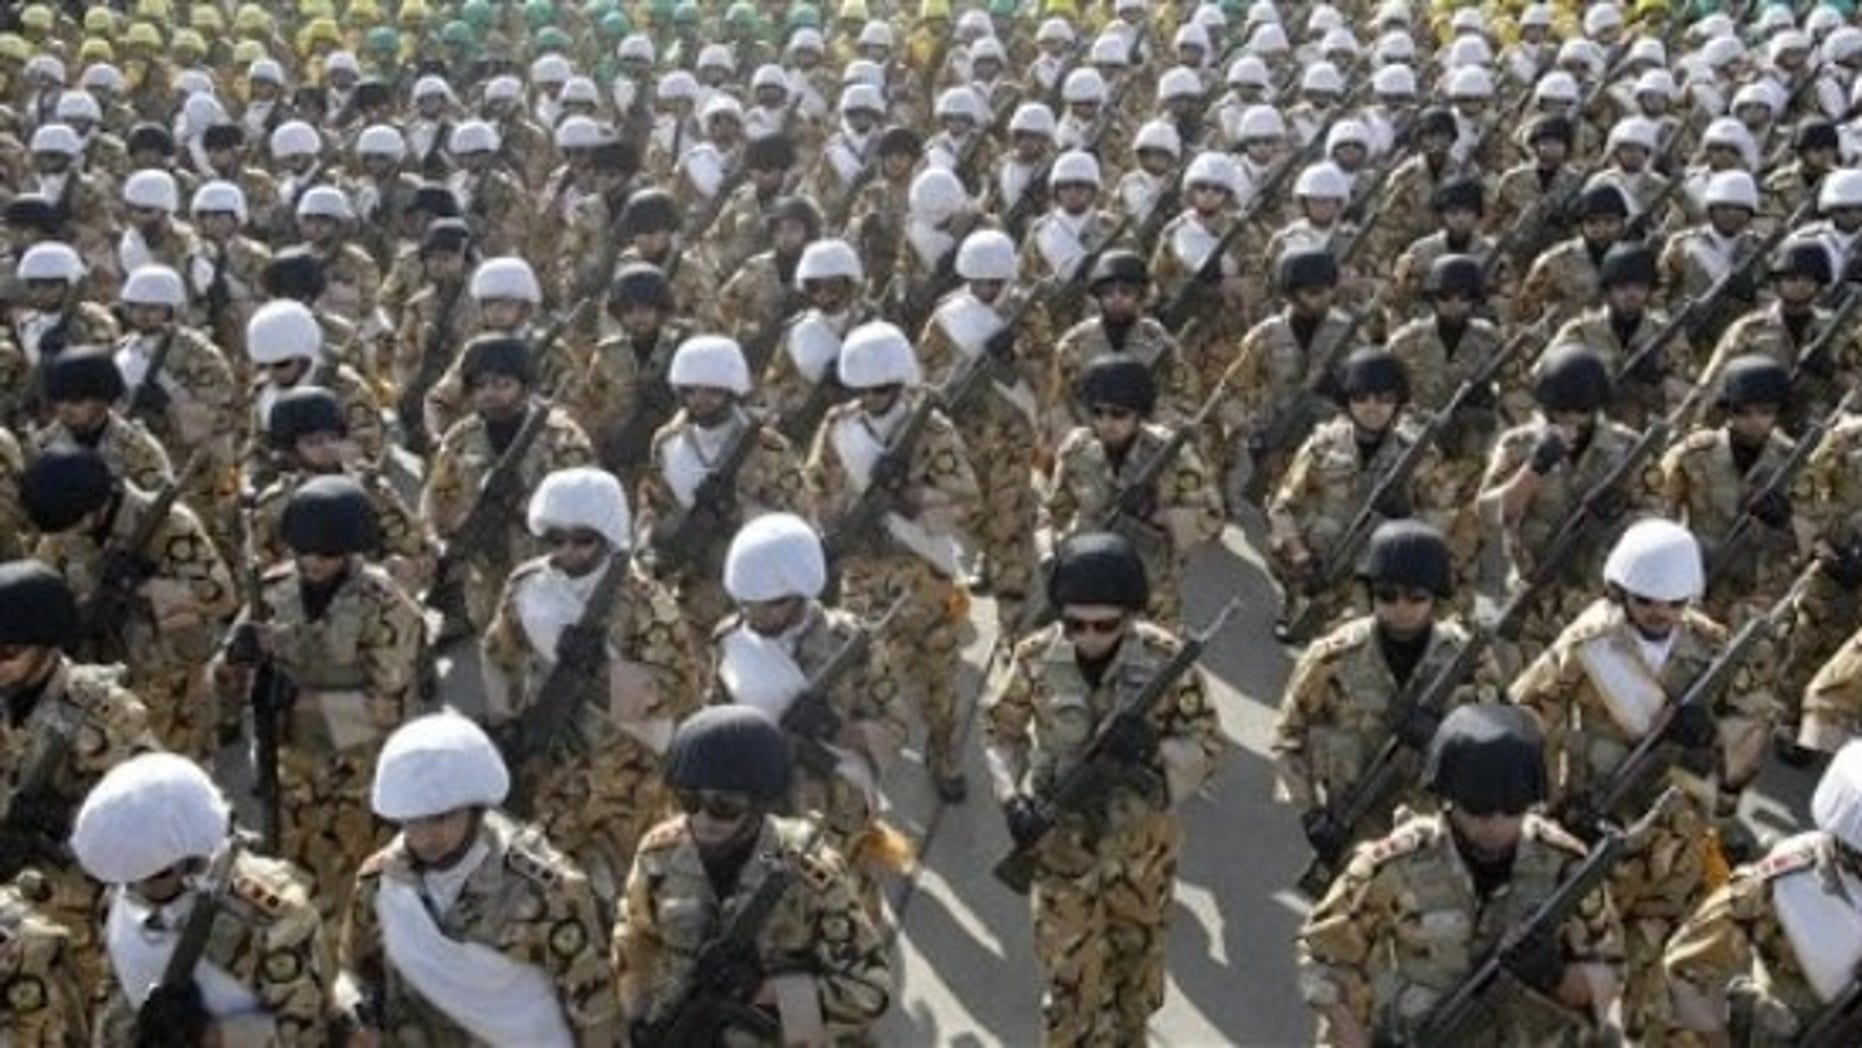 April 17, 2012: Iranian troops march during a military parade commemorating National Army Day in front of the mausoleum of the late revolutionary founder Ayatollah Khomeini, outside Tehran, Iran.